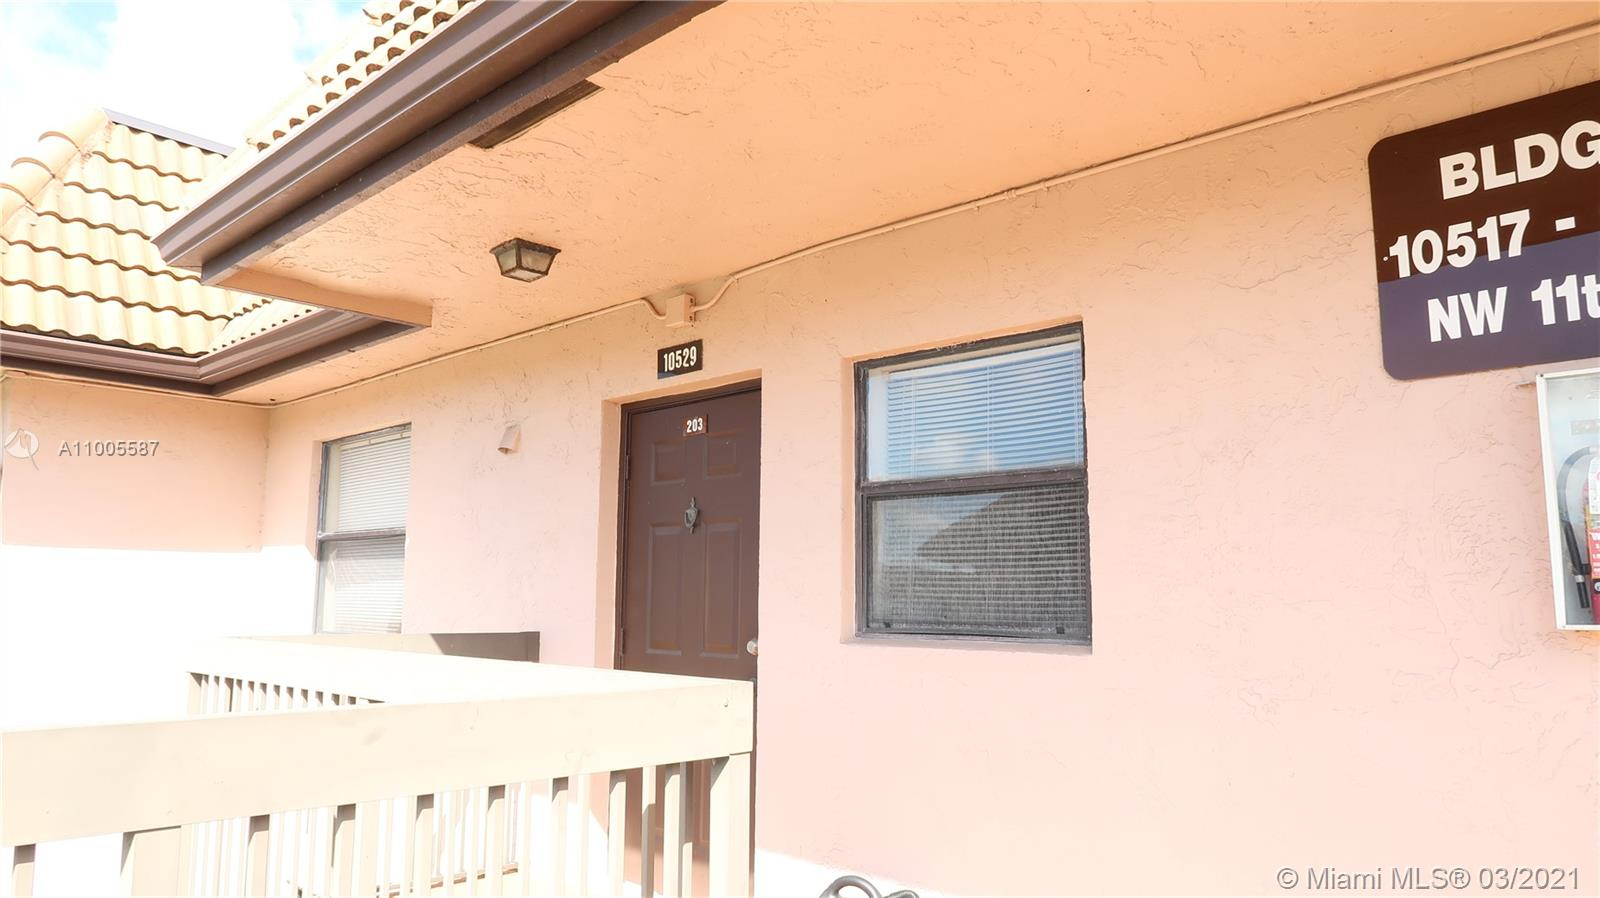 """Investor Special!! Located in Fairview at Pembroke Pointe. Needs to be completely remodeled. Price reflects condition, """"Sold As Is."""" Comparable units rent for $1600 within Fairview."""